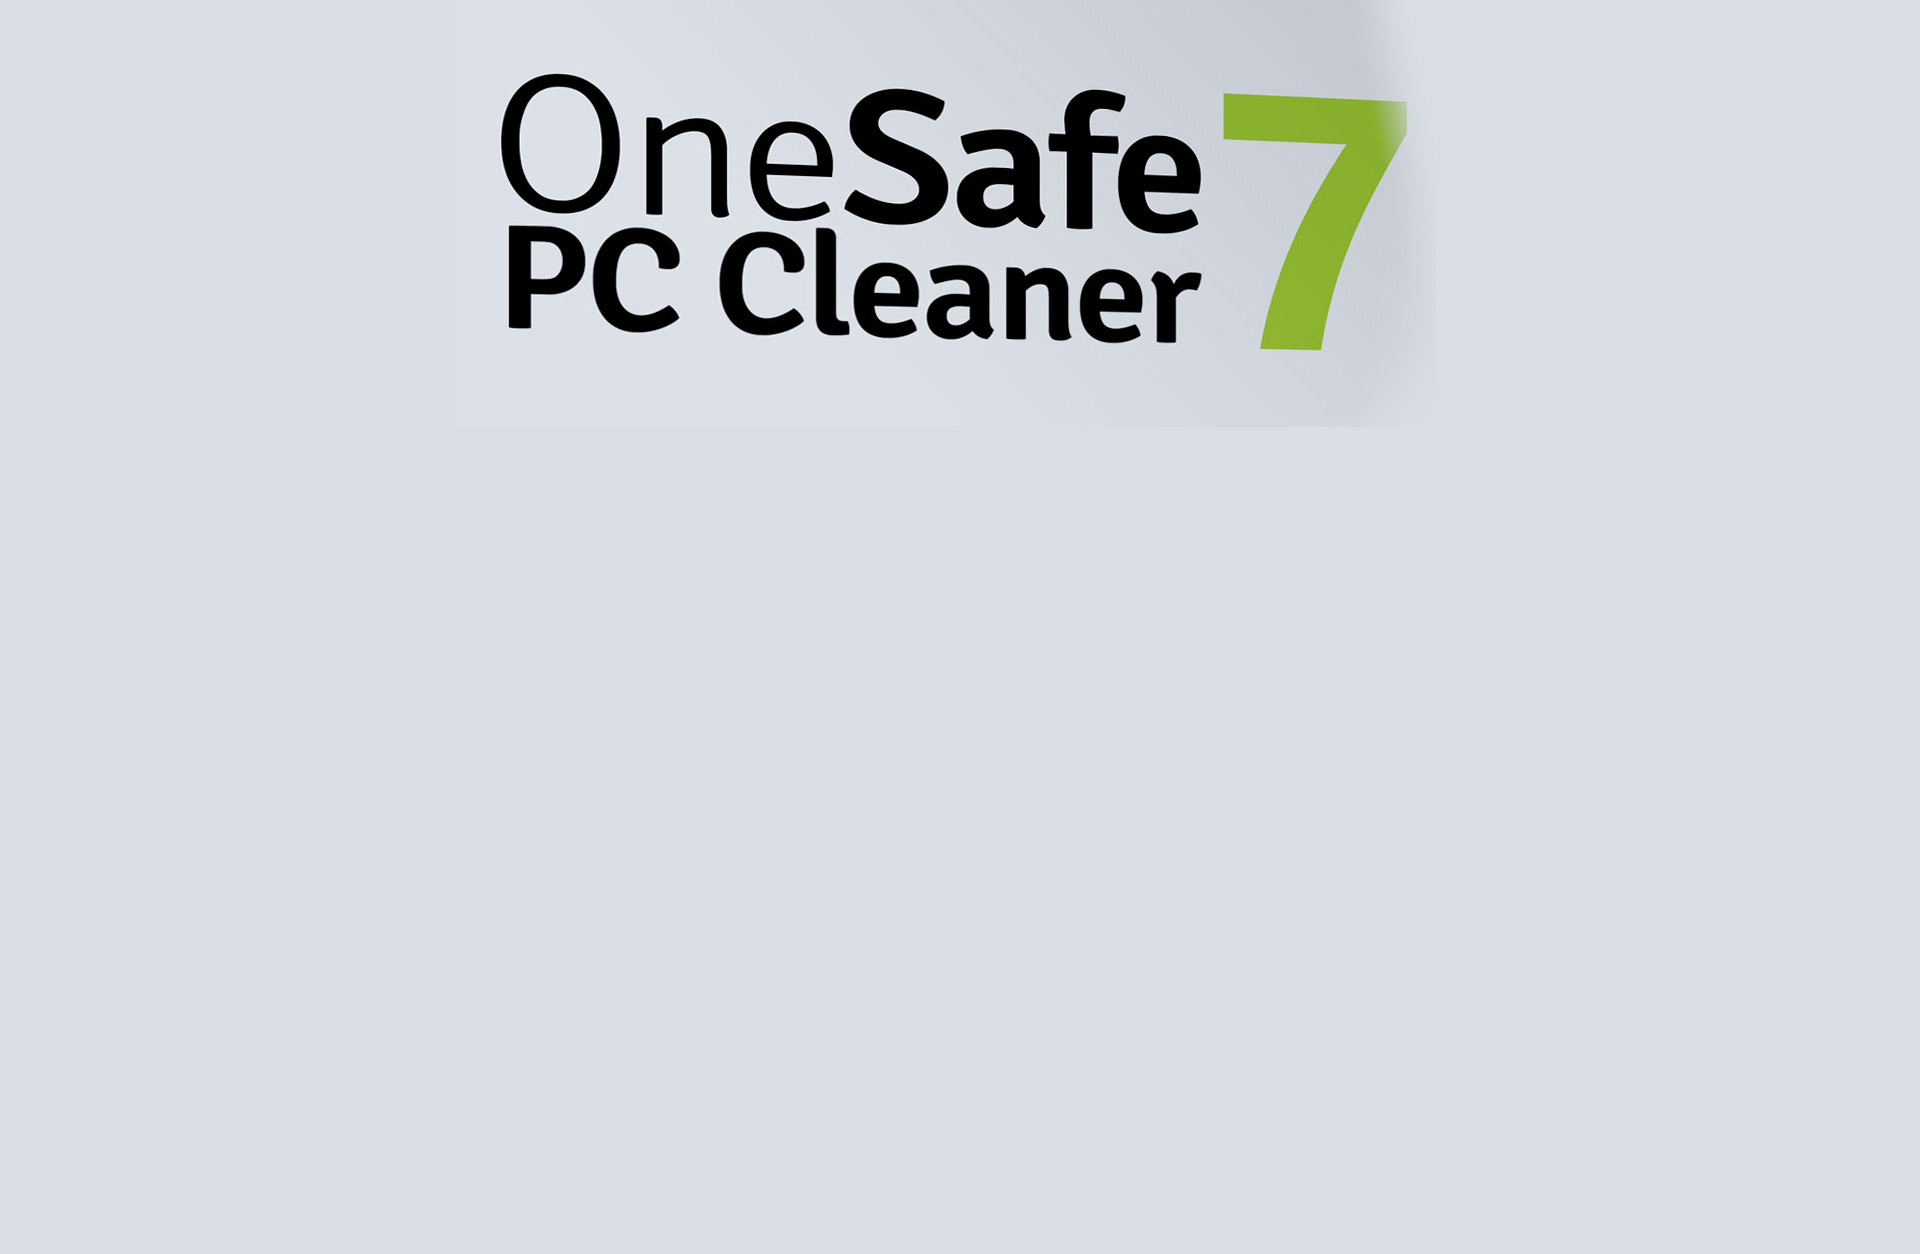 OneSafe PC Cleaner 7